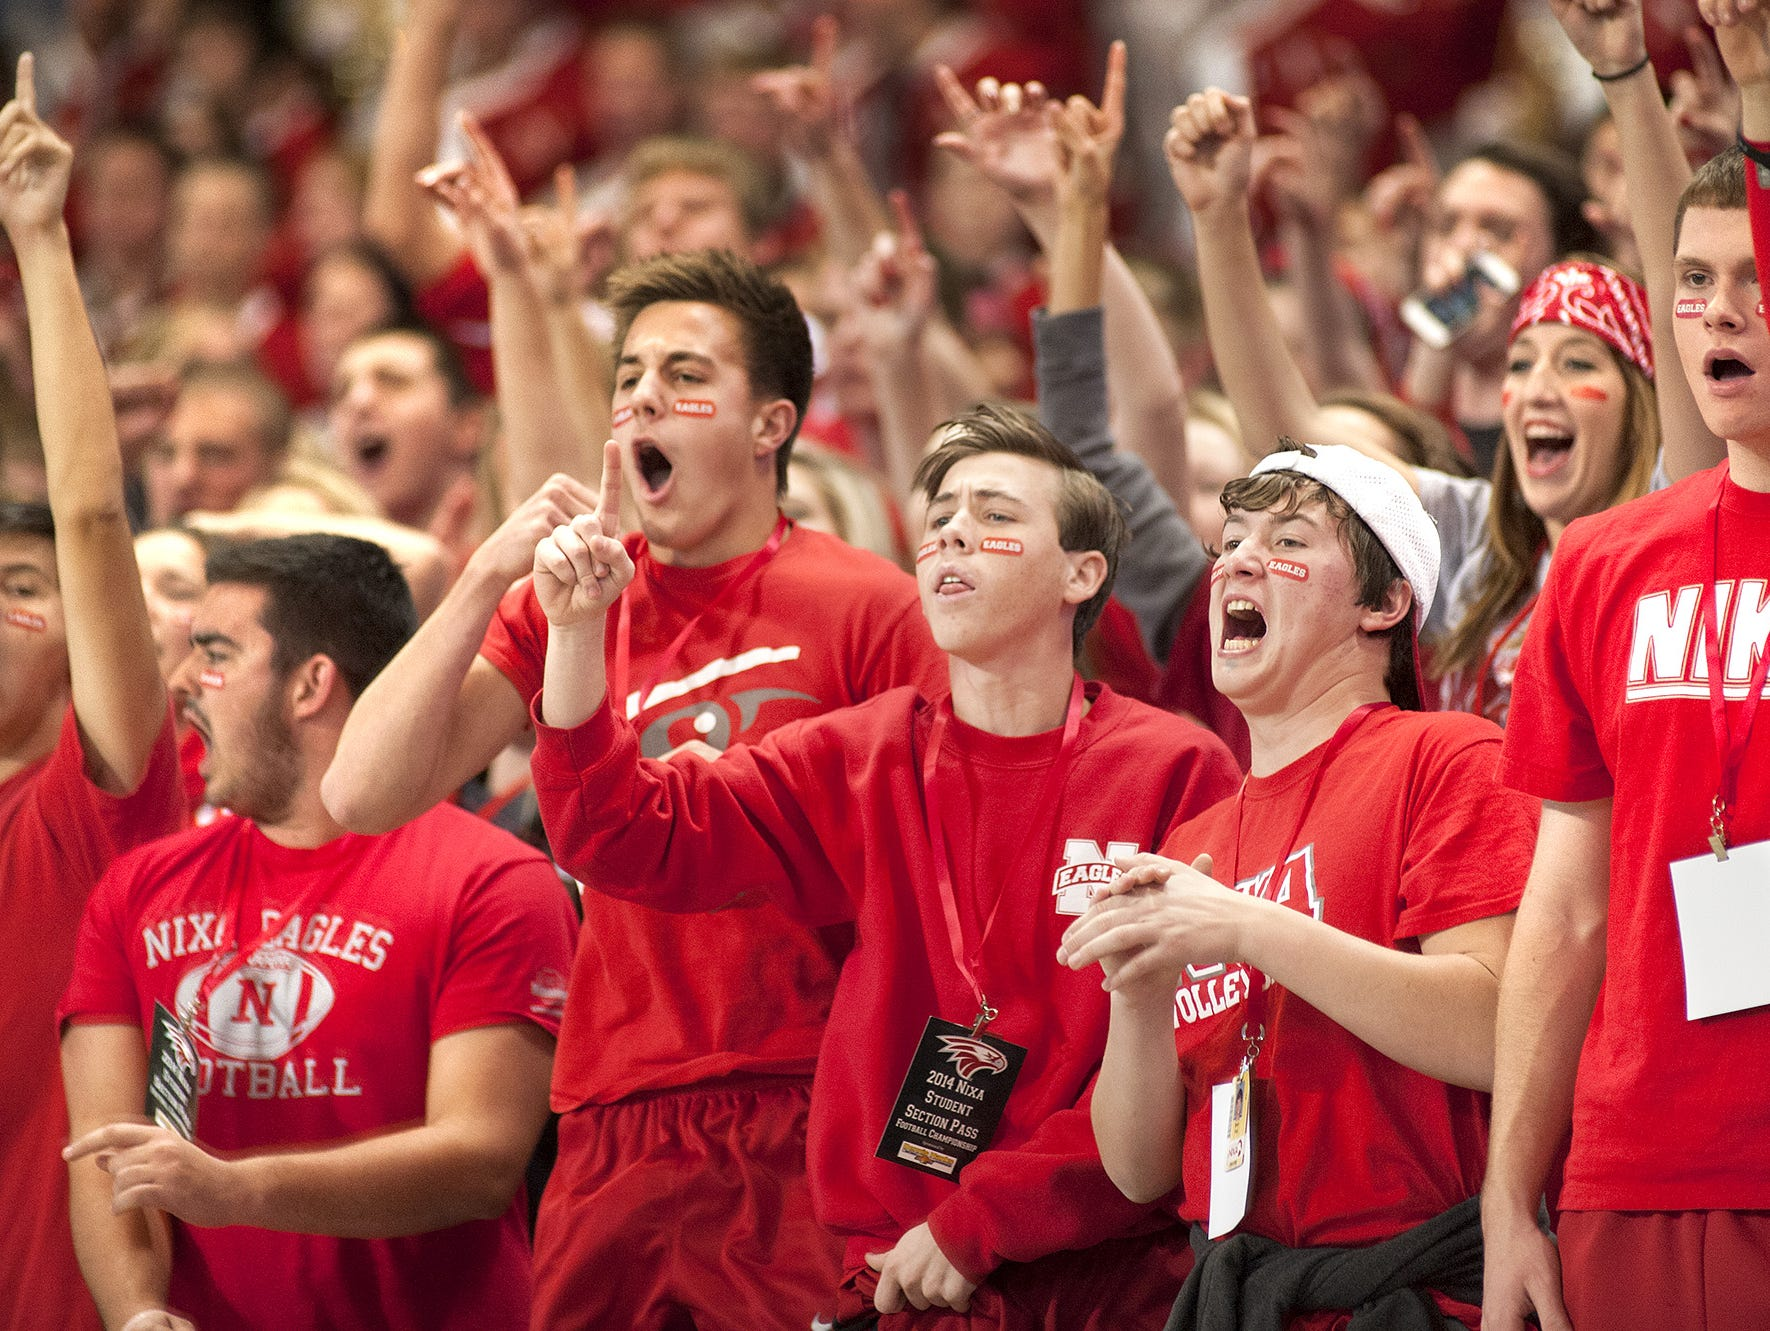 Nixa High School football fans cheer on the Eagles during the 2014 MSHSAA Class 5 football championship game at the Edward Jones Dome in St. Louis.